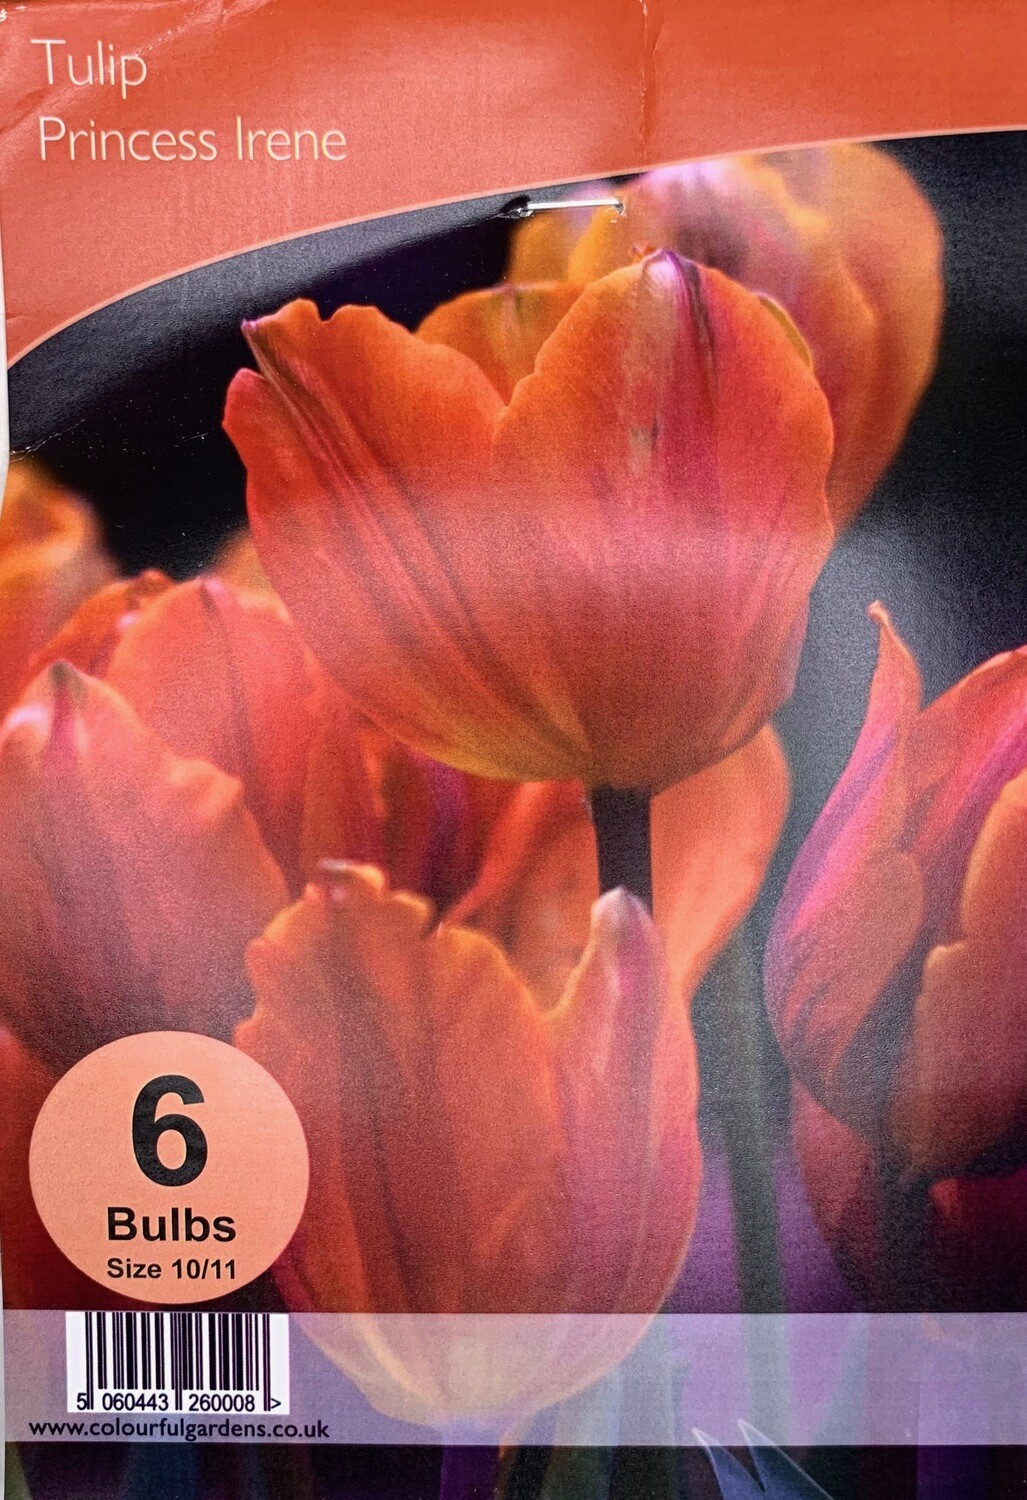 Tulip Princess Irene Bulbs